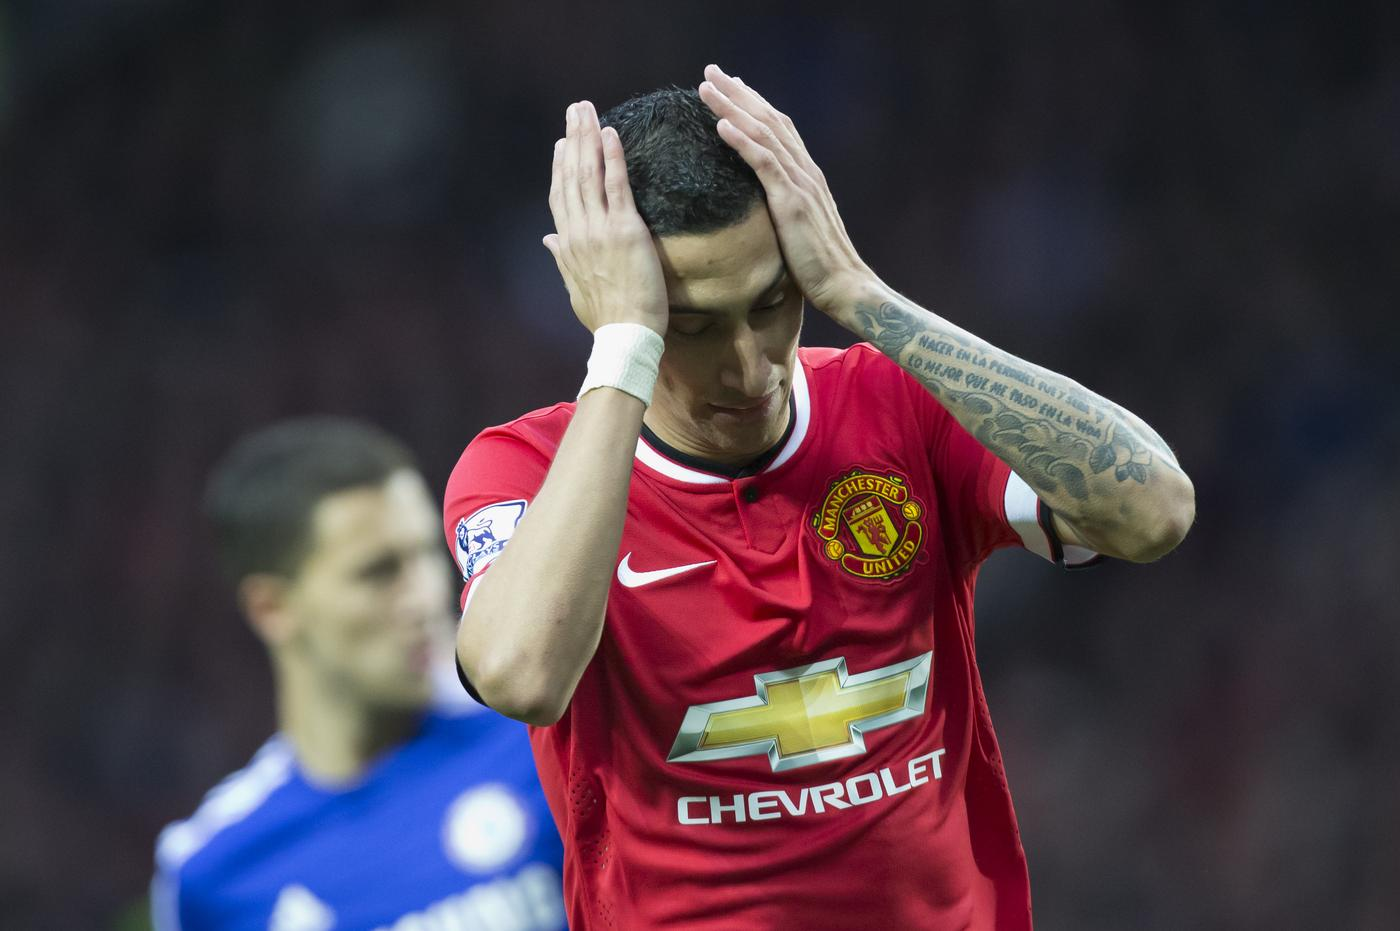 Manchester United's Angel Di Maria reacts after a missed opportunity during his team's English Premier League soccer match between Manchester United and Chelsea at Old Trafford Stadium, Manchester, England, Sunday Oct. 26, 2014. (AP Photo/Jon Super) AP Photo/Jon Super